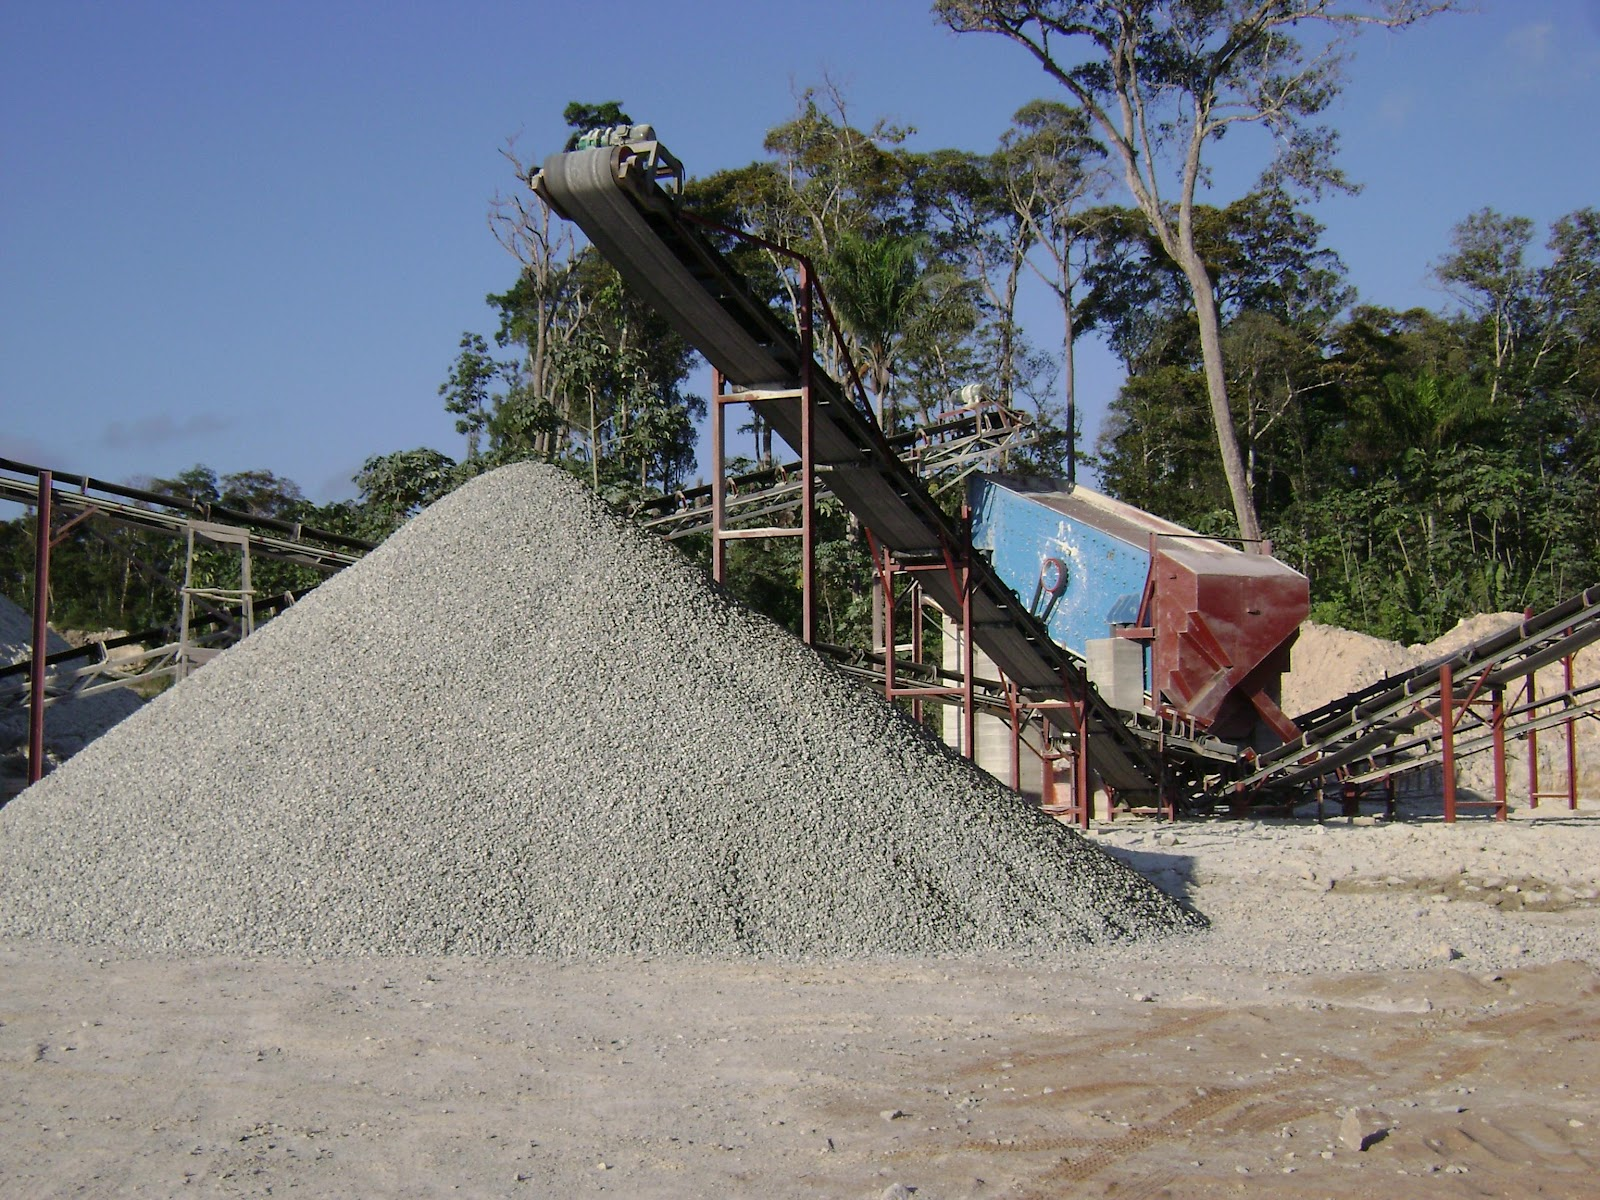 Jaw Crusher: Stone crusher plant with land for sale in pune